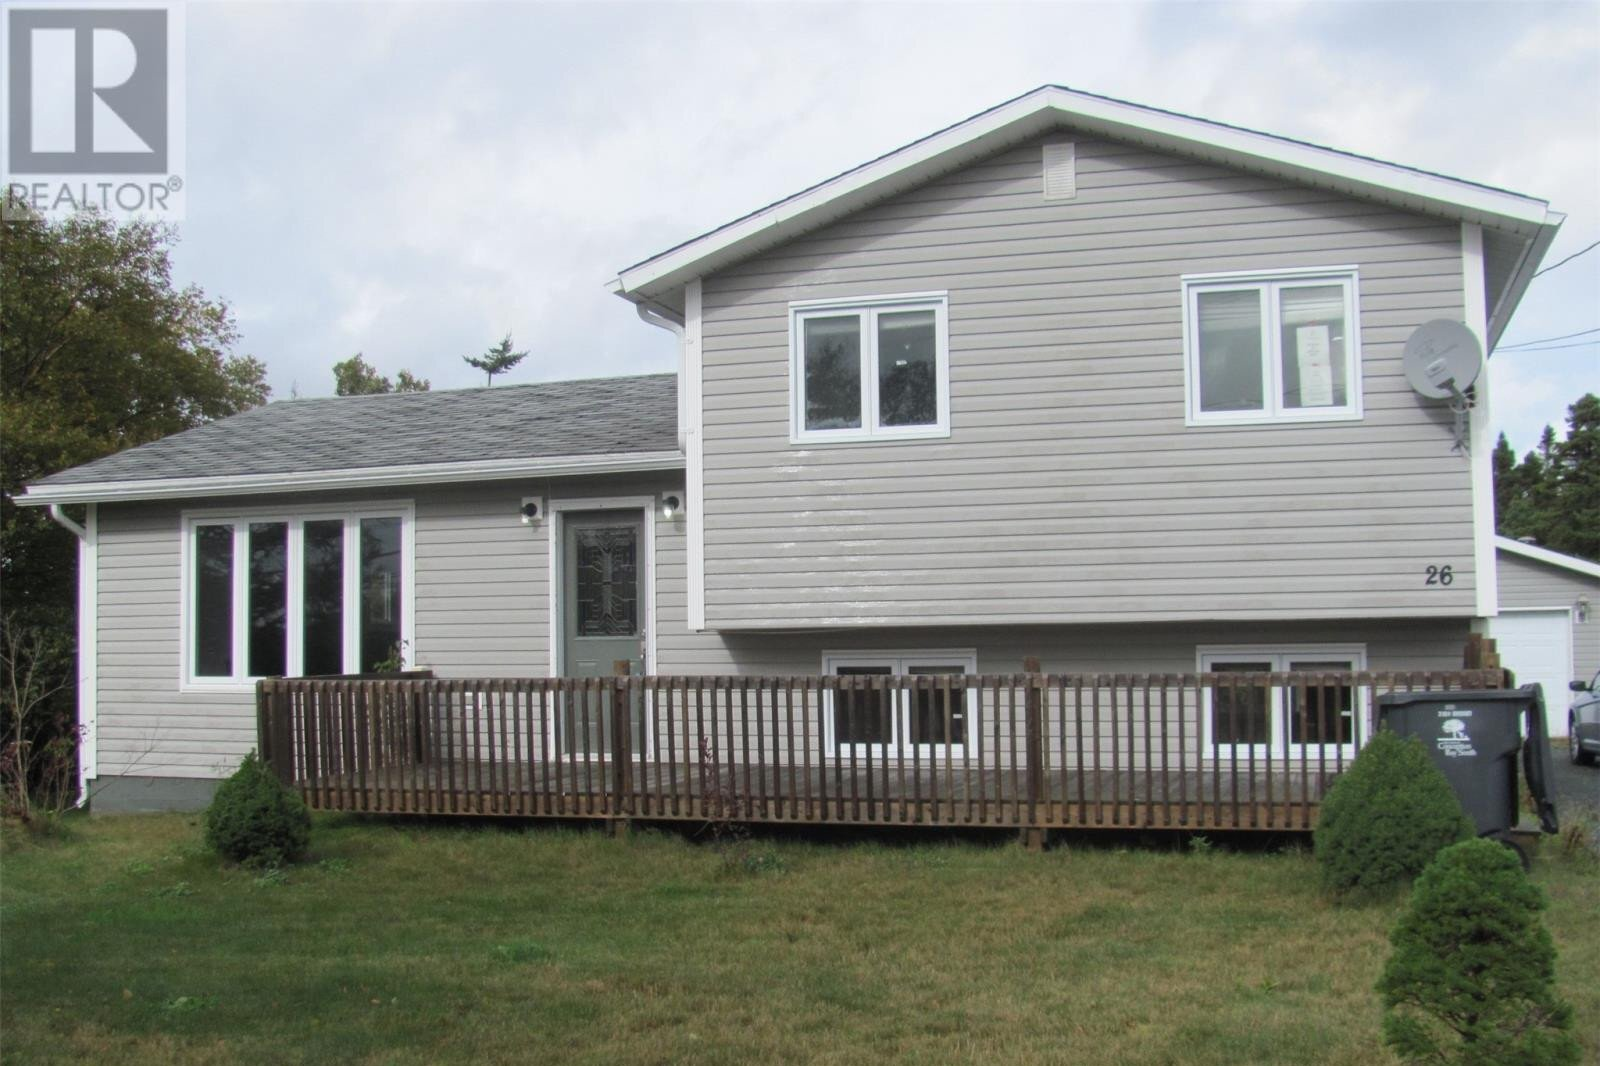 House for sale at 26 Indian Pond Estates Conception Bay South Newfoundland - MLS: 1222792